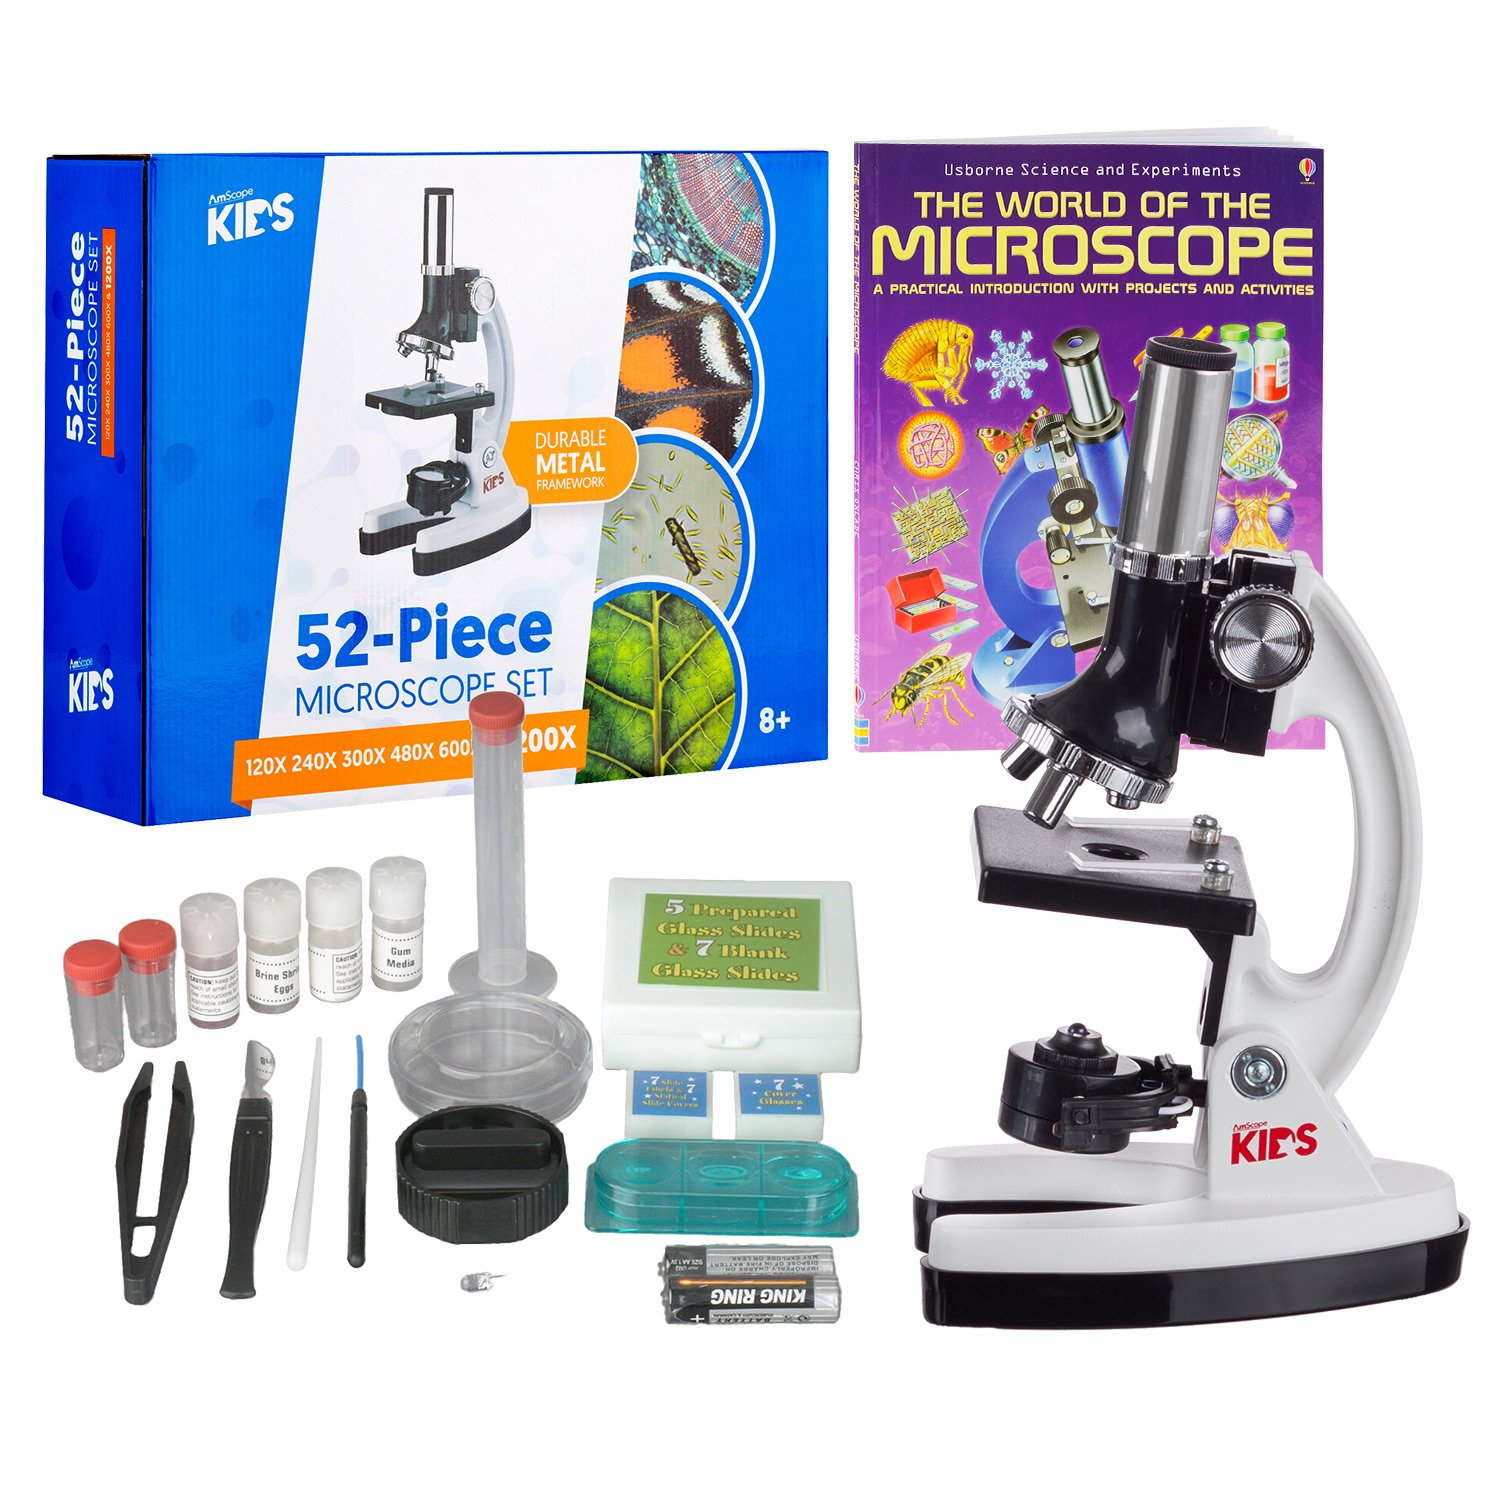 KKTECT Digital Microscope for Children 200X 2MP 5 Inch Adjustable HD Screen Beginners LCD Digital Microscope Movable Stage,8 Led Lights and Gift Box for Home and School Education